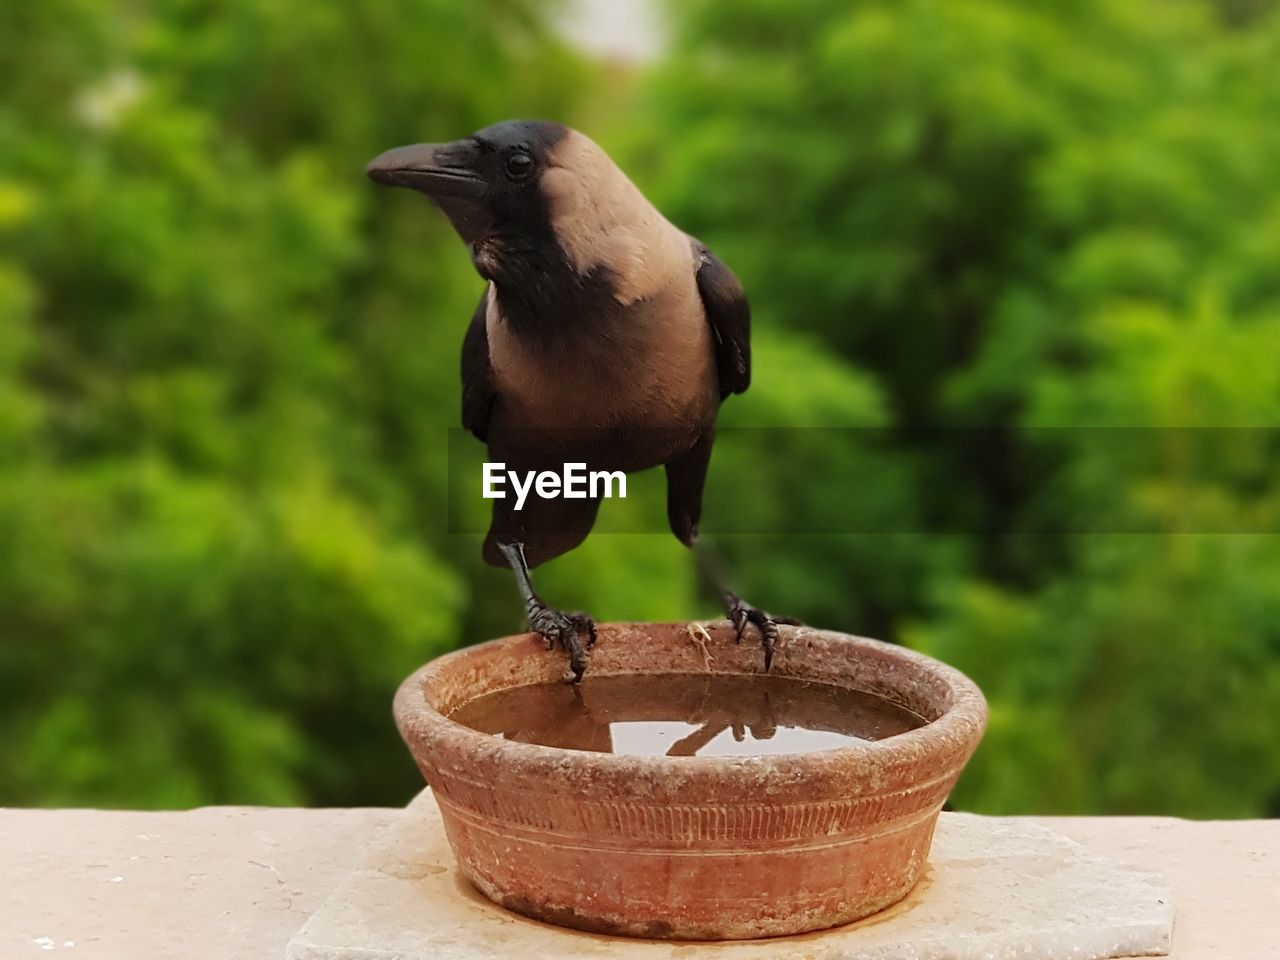 focus on foreground, one animal, plant, no people, vertebrate, day, animal themes, animal, nature, bird, animals in the wild, green color, tree, animal wildlife, perching, outdoors, retaining wall, close-up, potted plant, black color